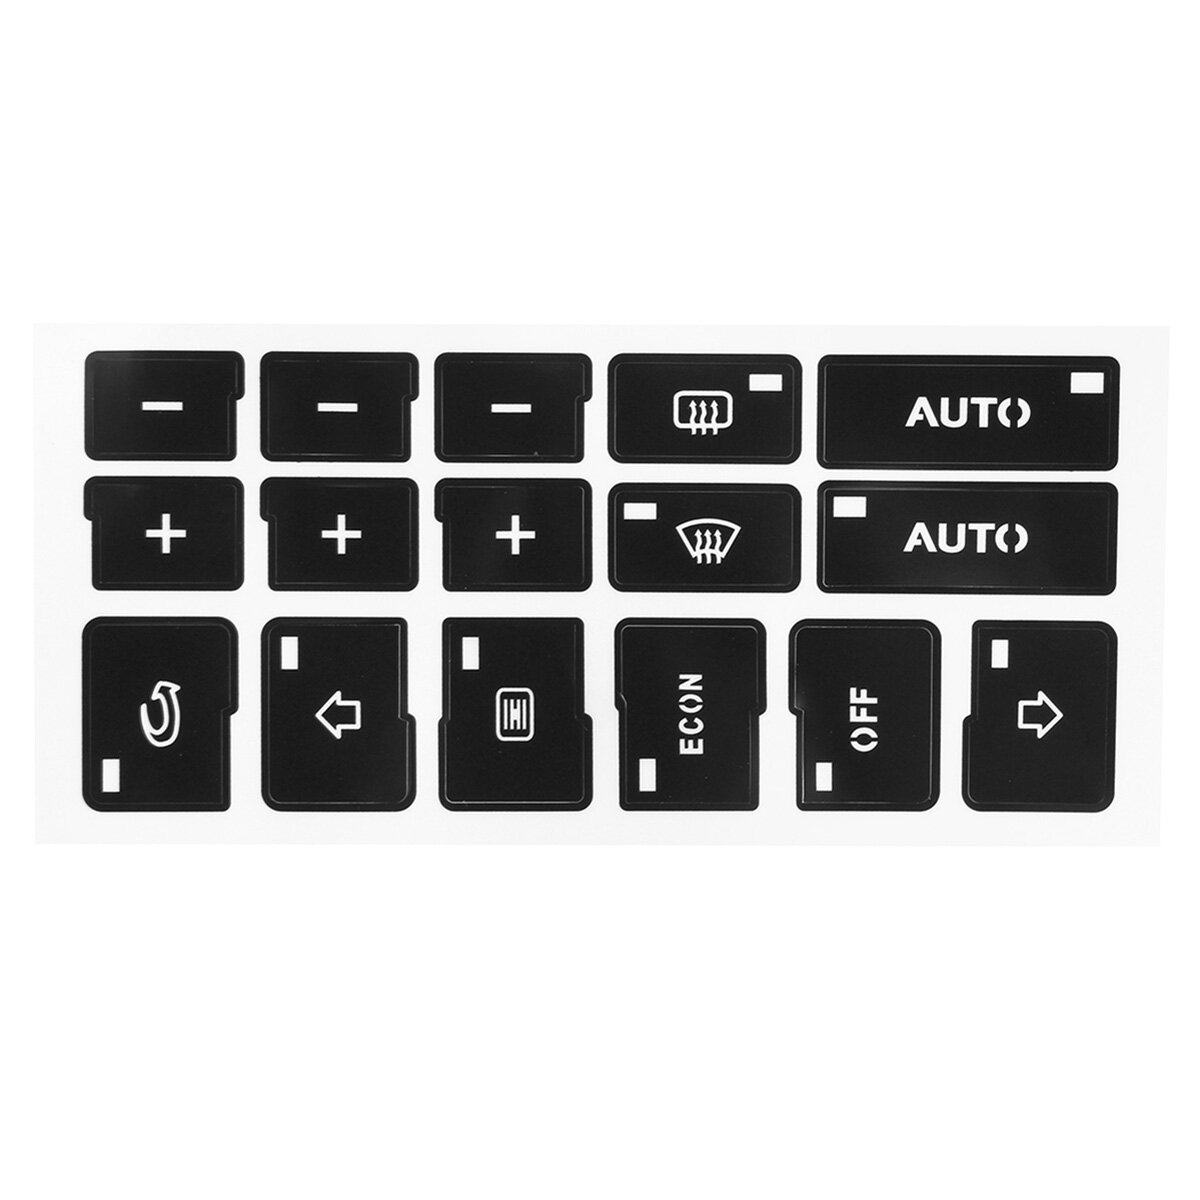 AC Climate Control Button Repair Stickers Decals For Audi A4 B6 B7 2000-2004